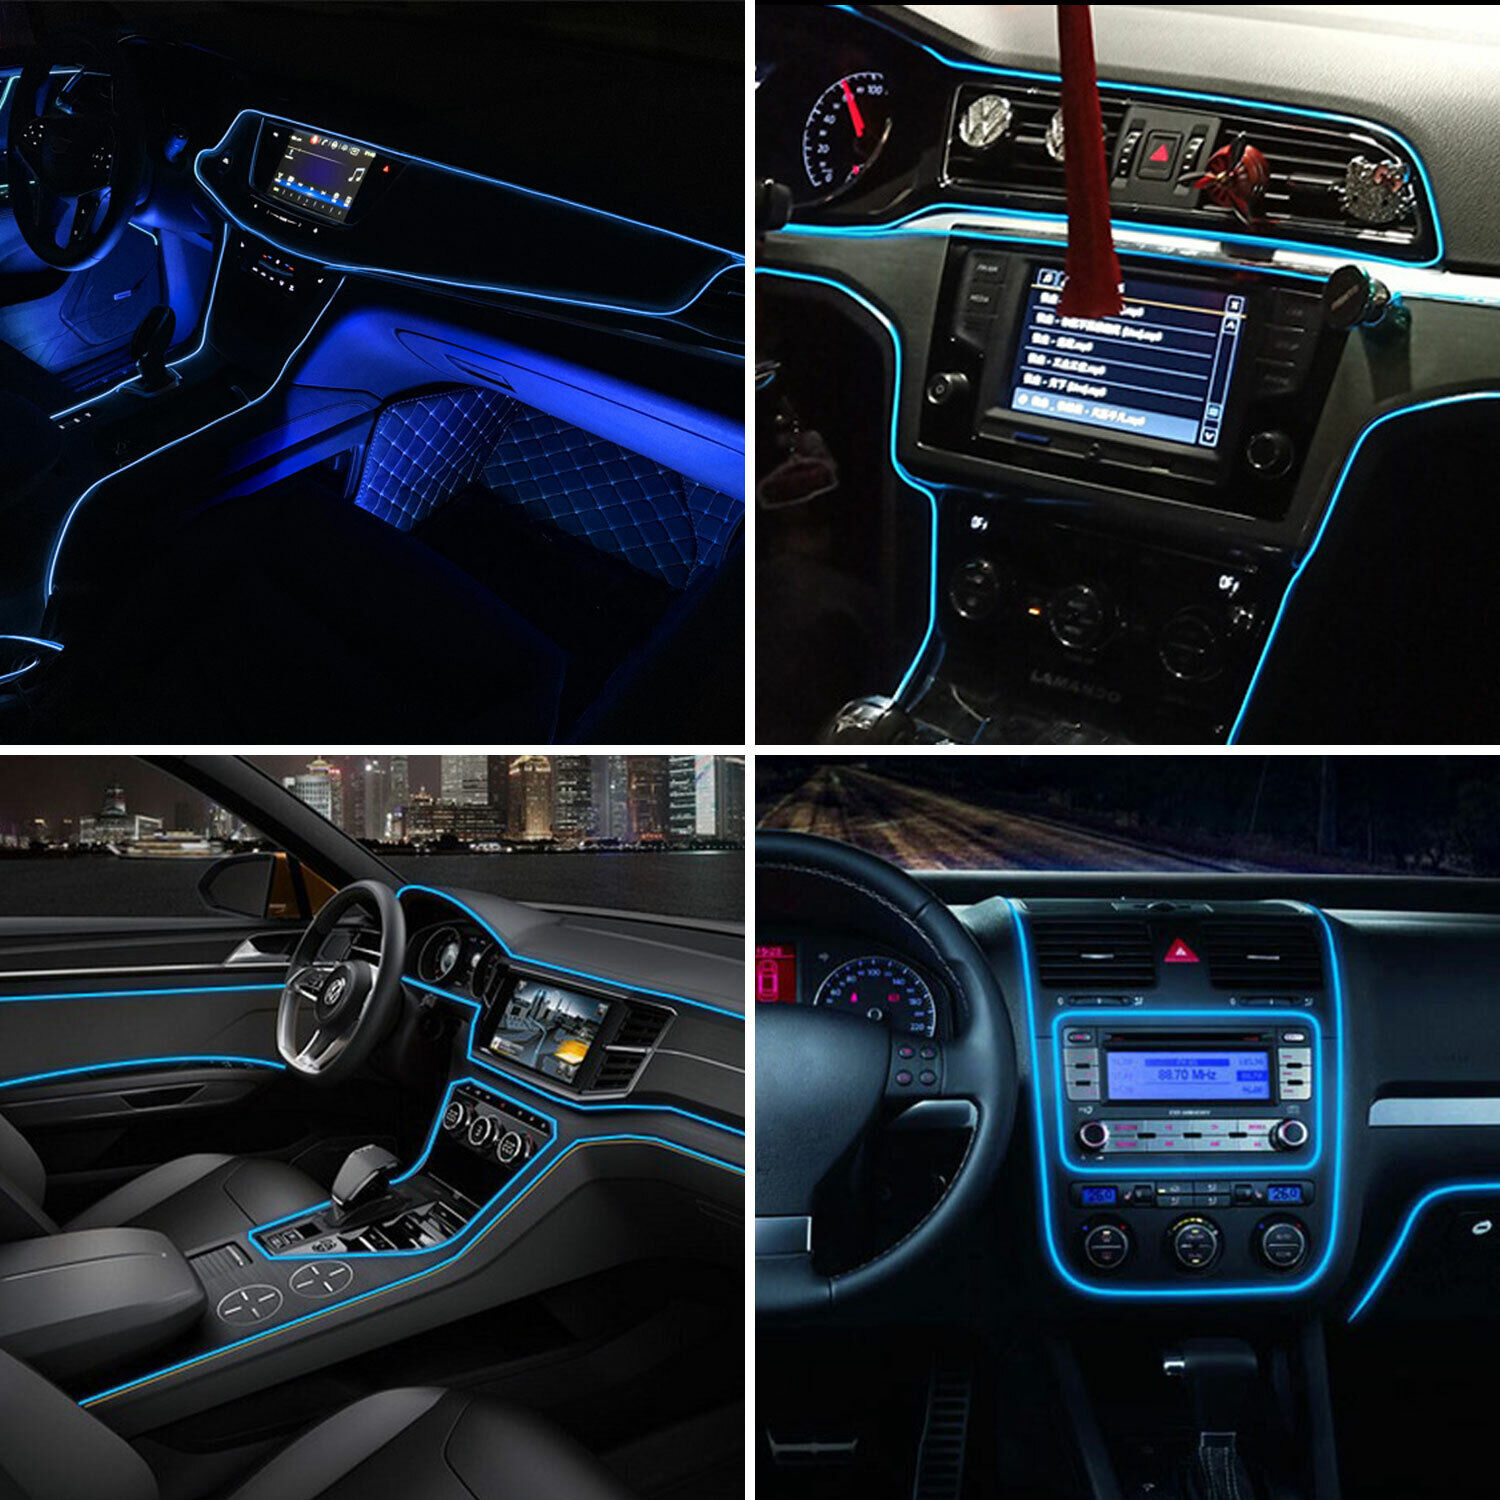 6.6FT Blue Car Interior Decor Wire Strip Light LED Atmosphere Lamp Accessories Car & Truck Parts